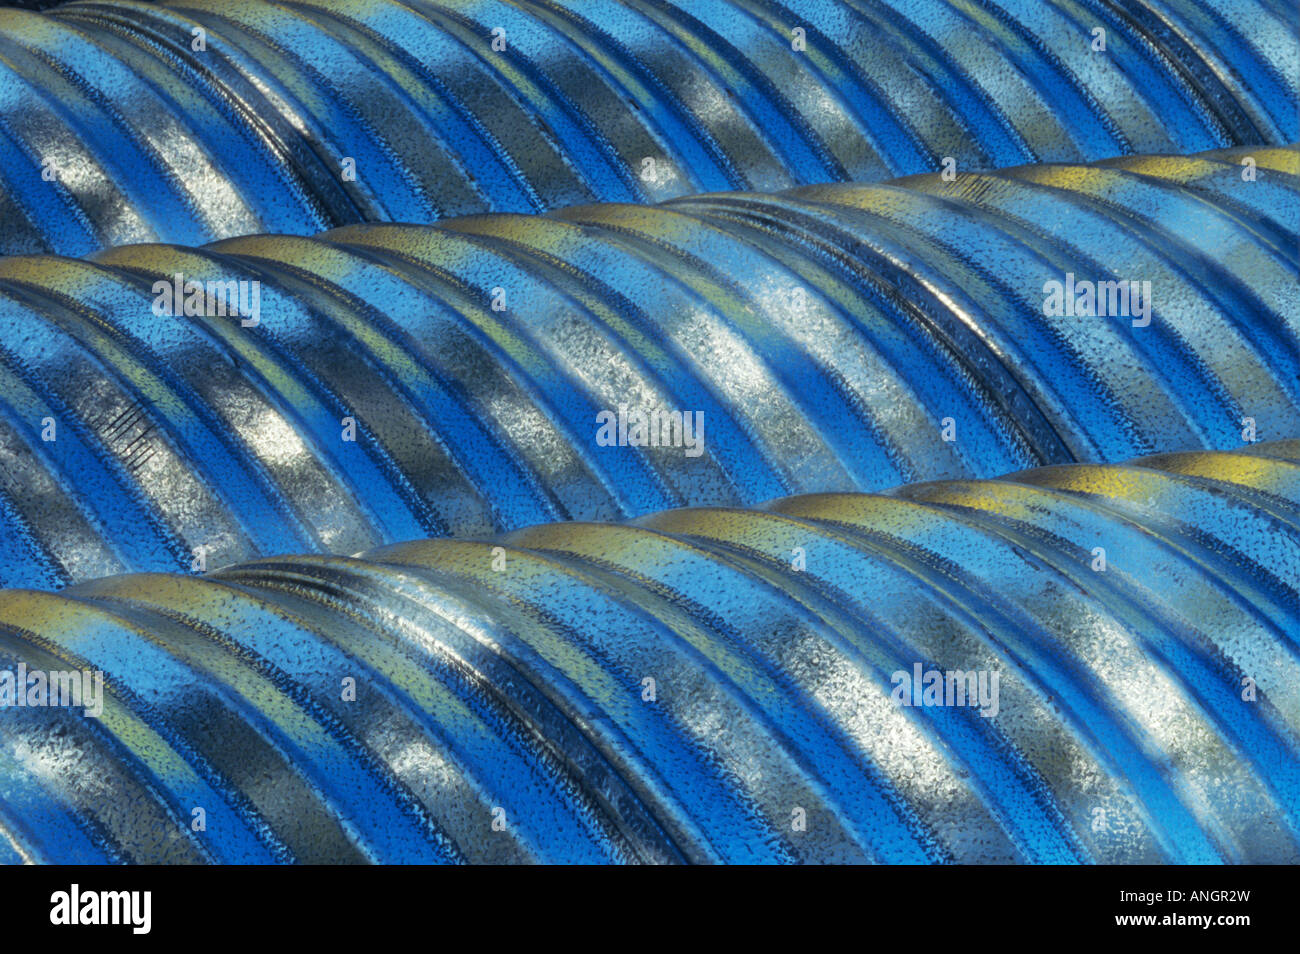 Metal culverts, Manitoba, Canada. Stock Photo